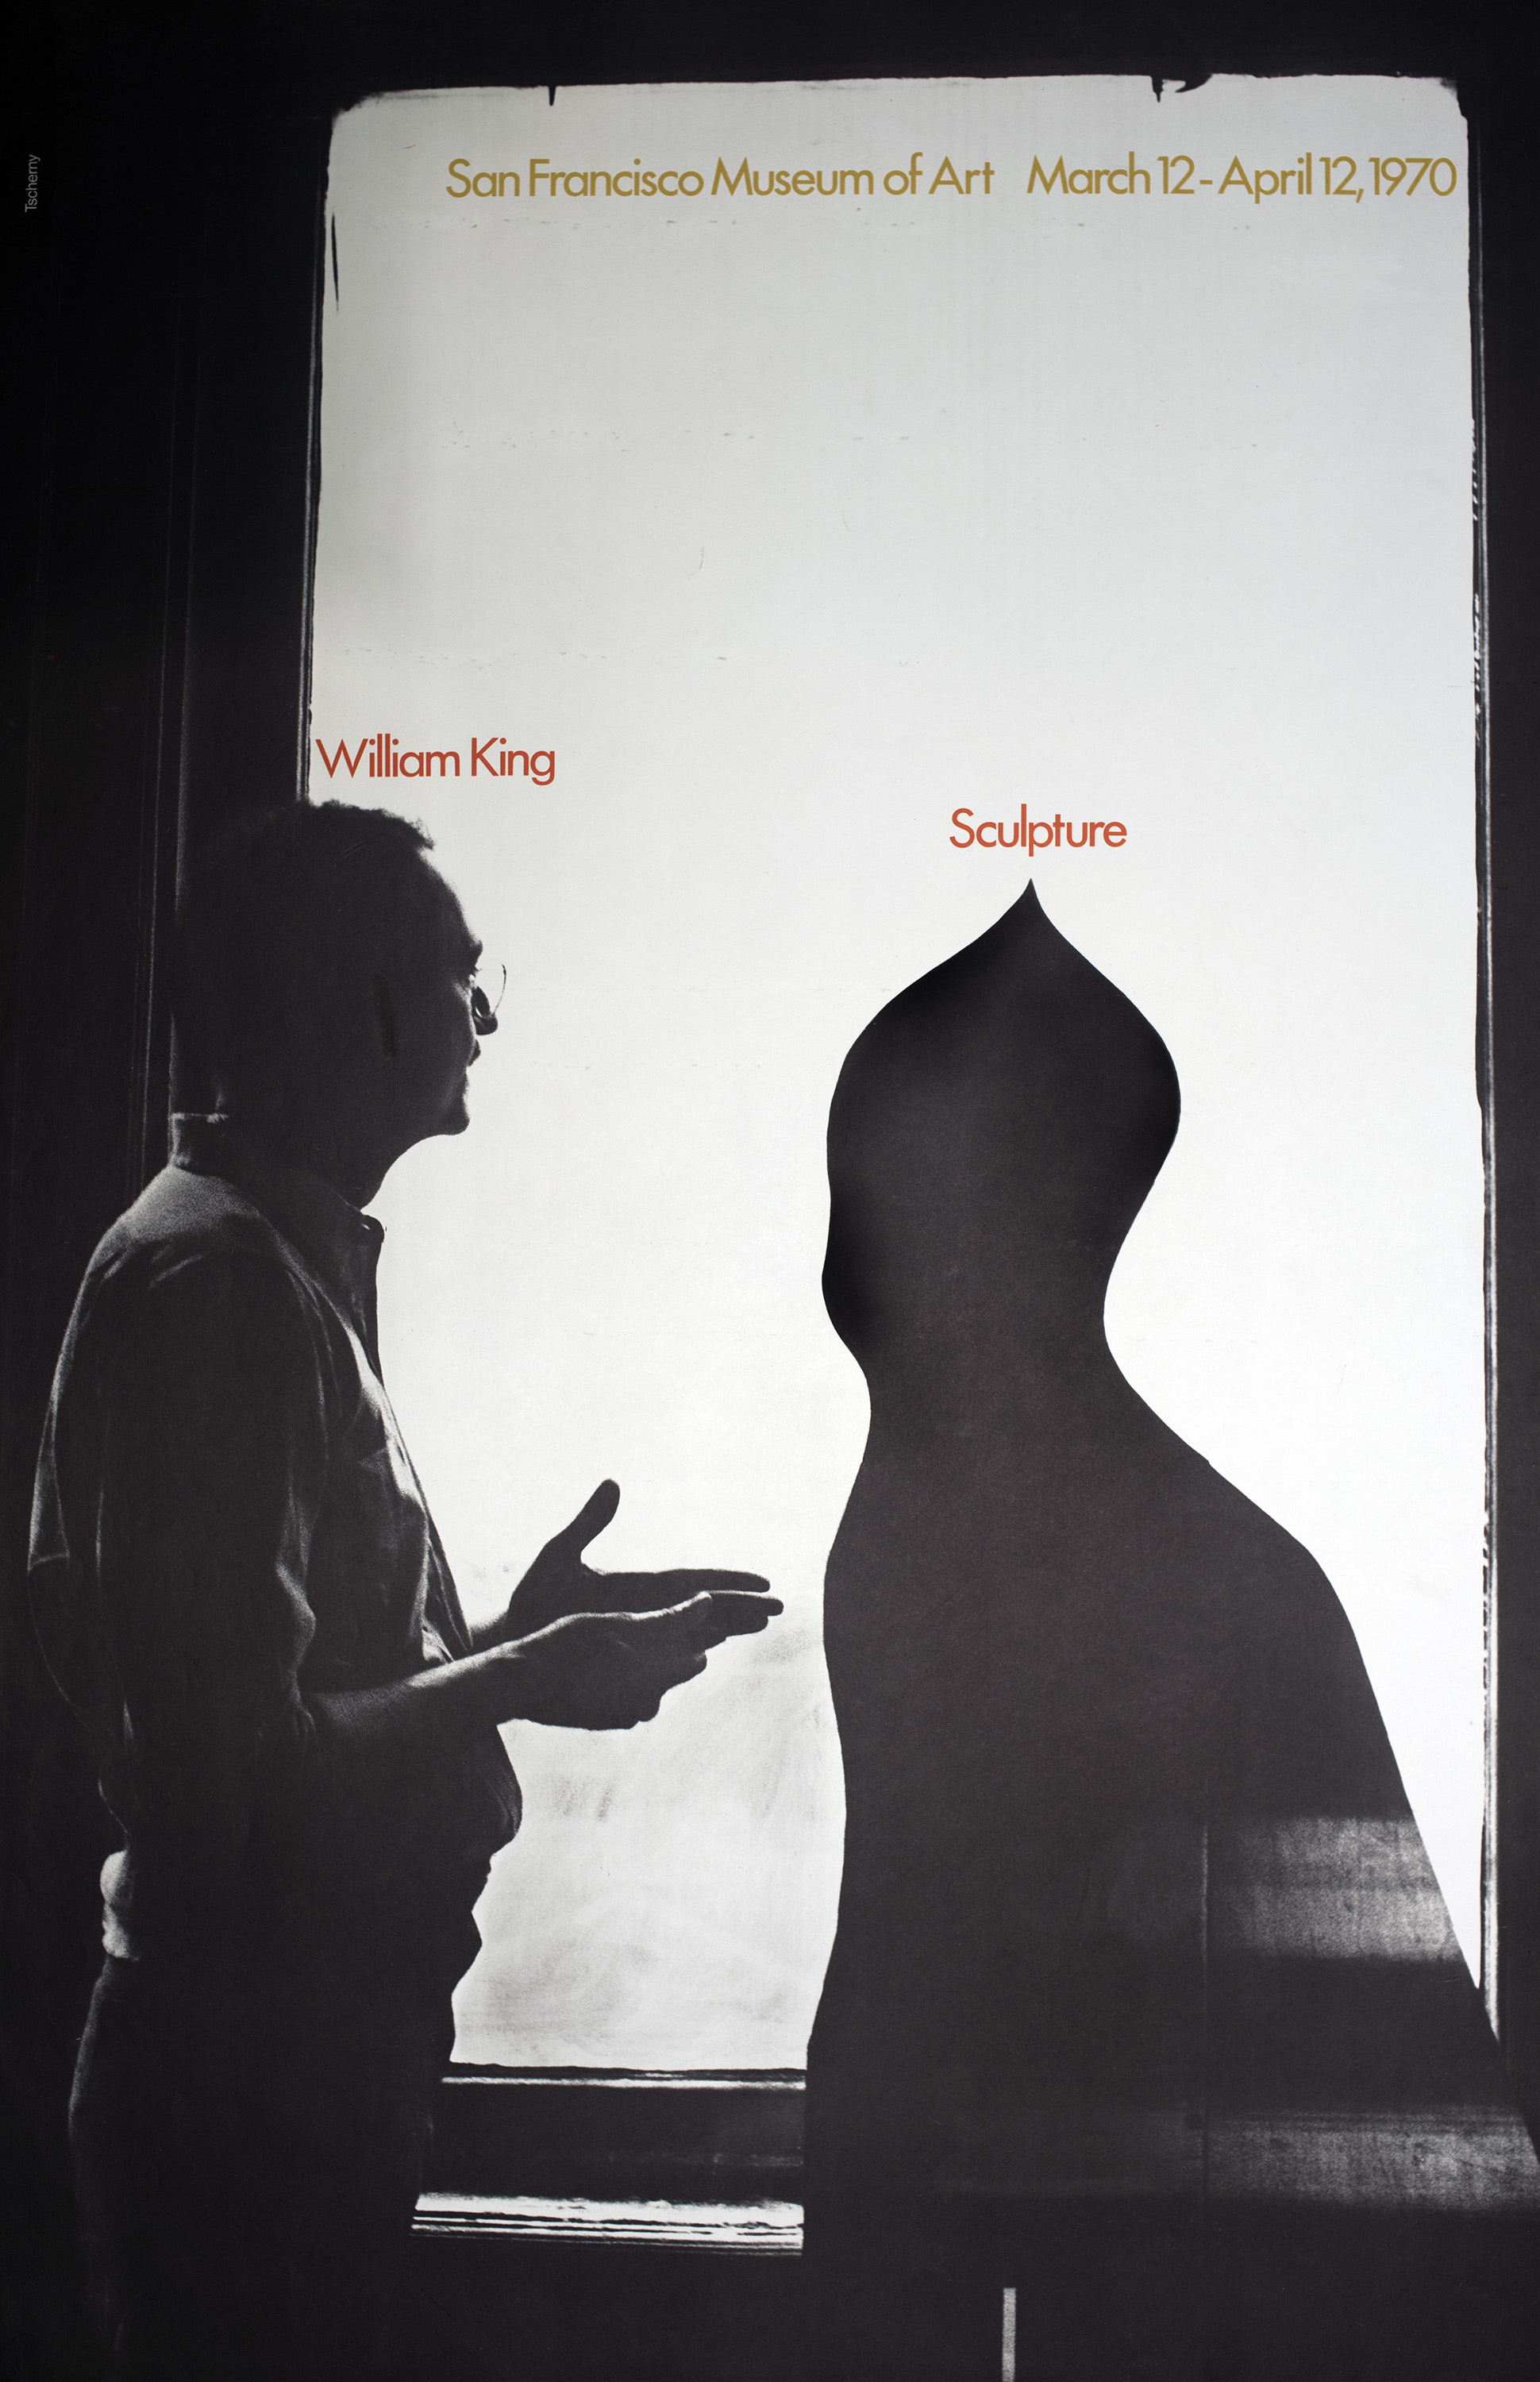 Black and white photograph of William King with a sculpture backlit by a window; both are labeled as such in red.